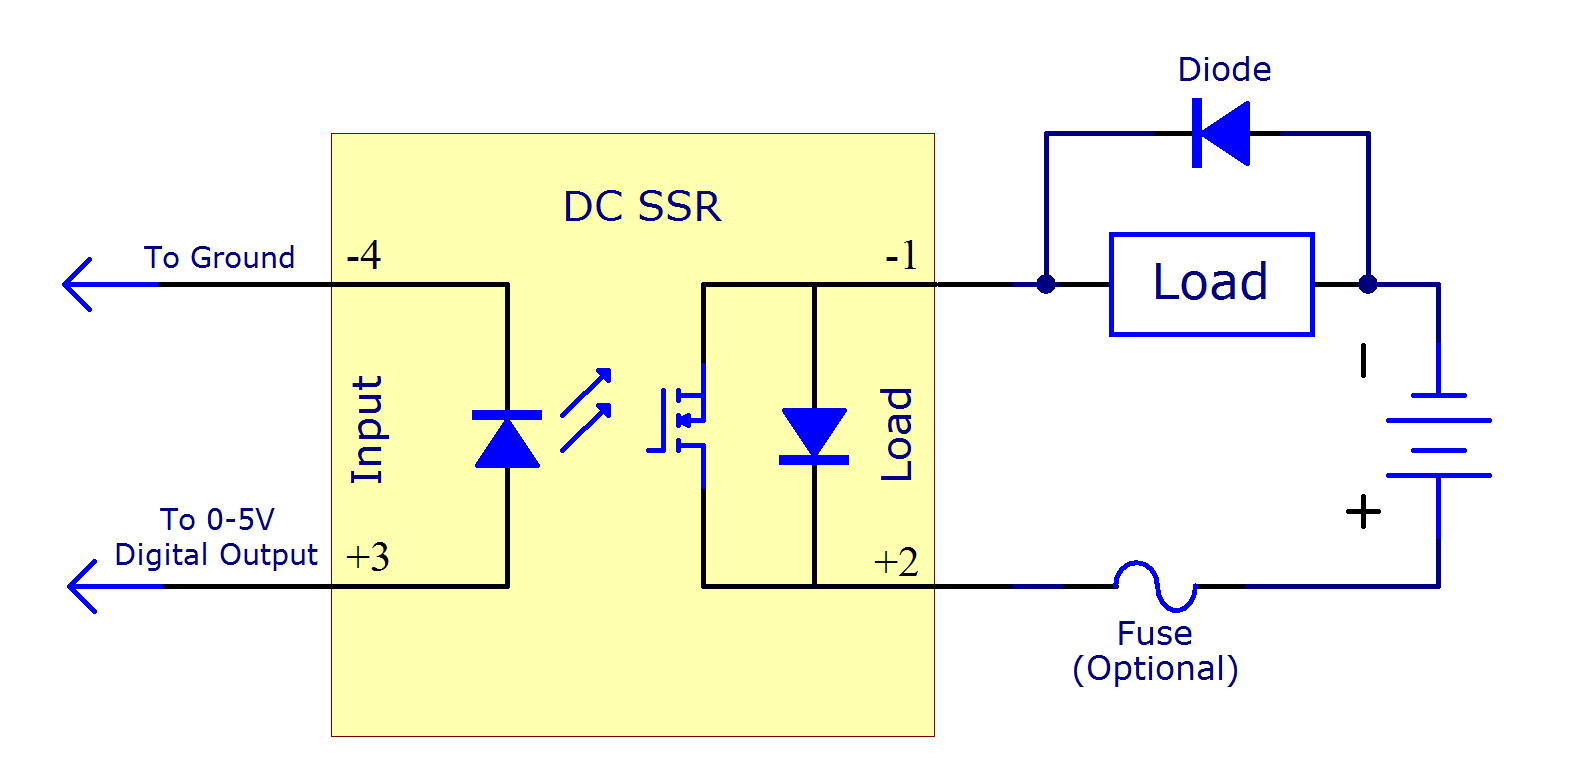 Solid State Relay Primer Phidgets Support In Series To Produce Two Output Voltages The Supply Voltage Is 240 V Full Size Image